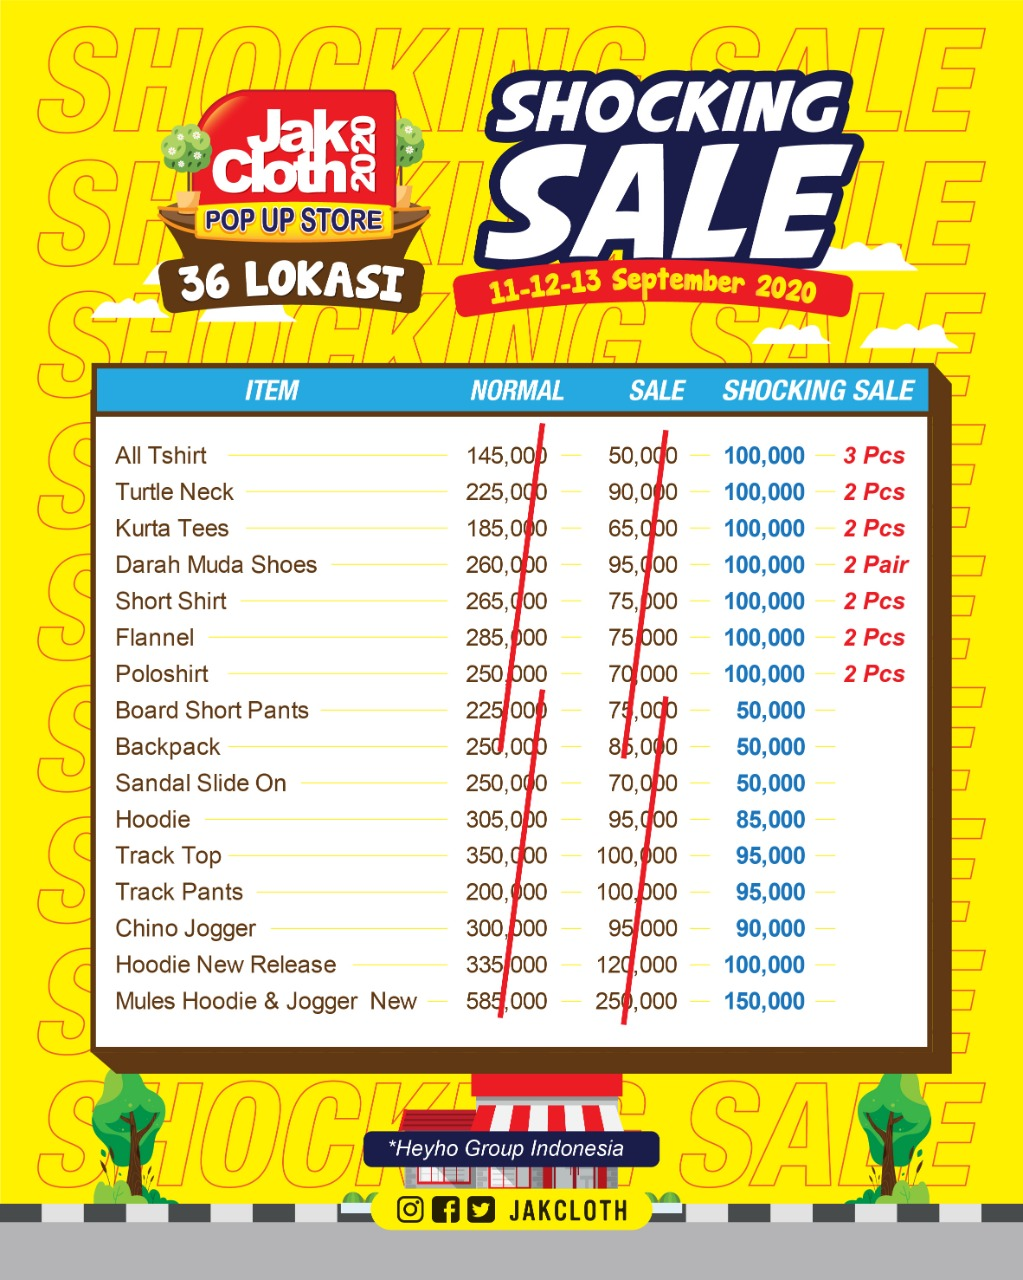 SHOCKING SALE IS BACK! DISELURUH JAKCLOTH STORE & POP UP STORE